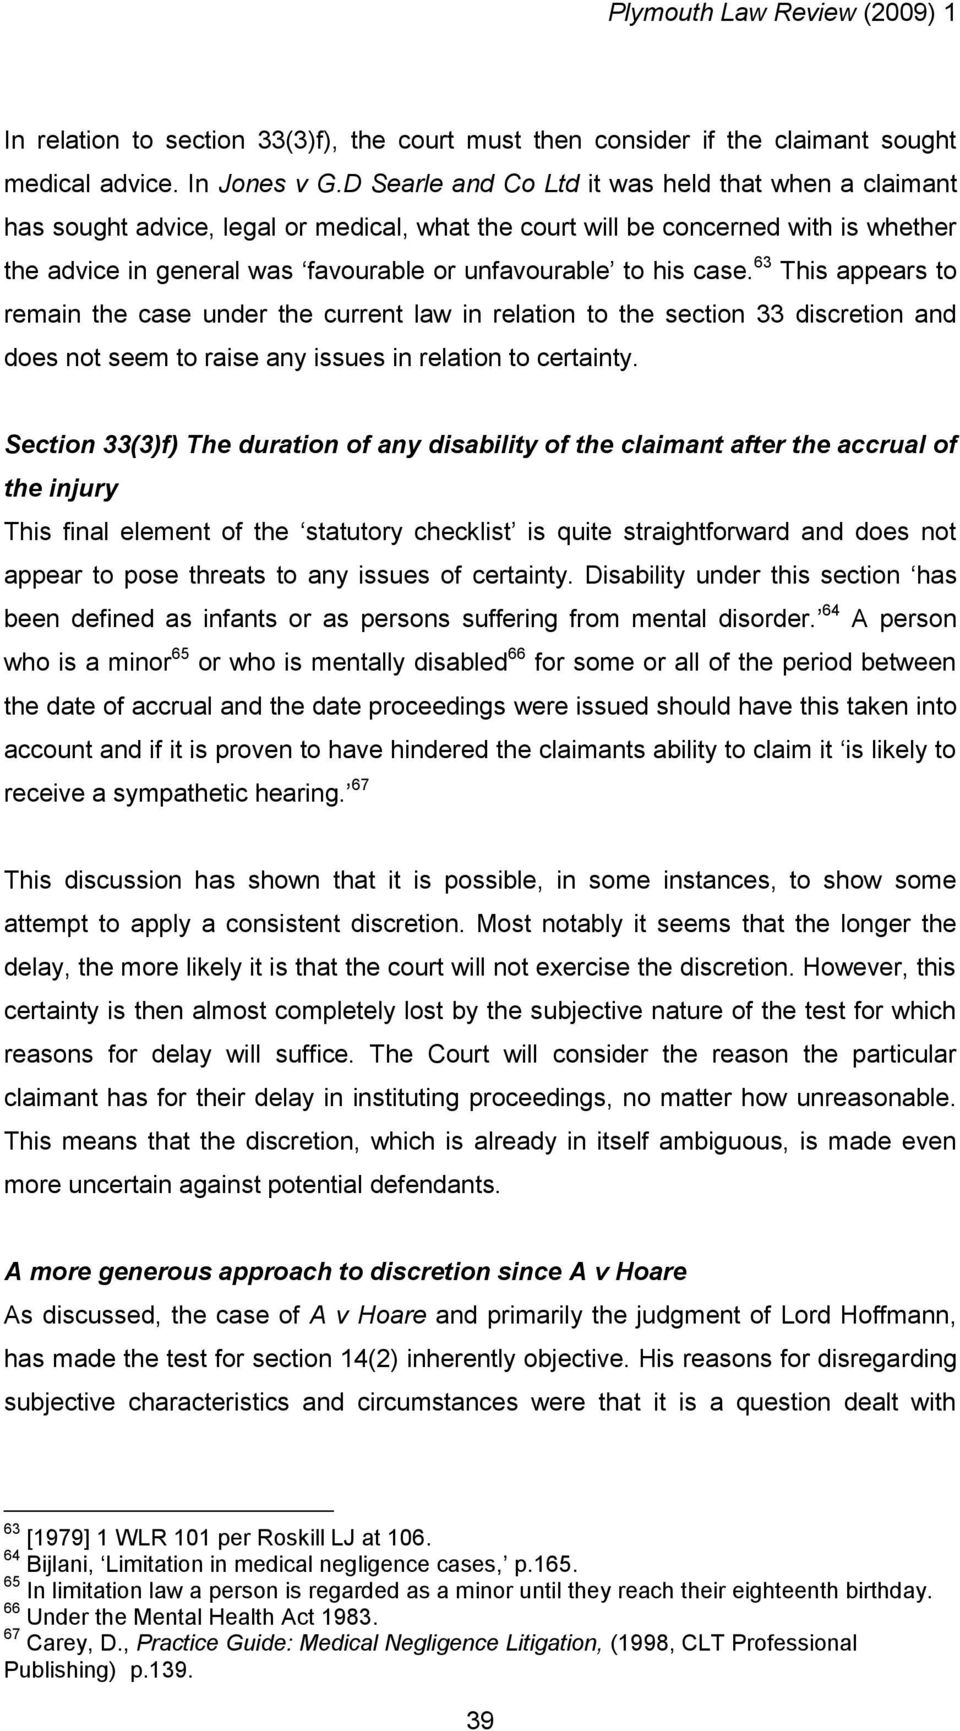 case. 63 This appears to remain the case under the current law in relation to the section 33 discretion and does not seem to raise any issues in relation to certainty.